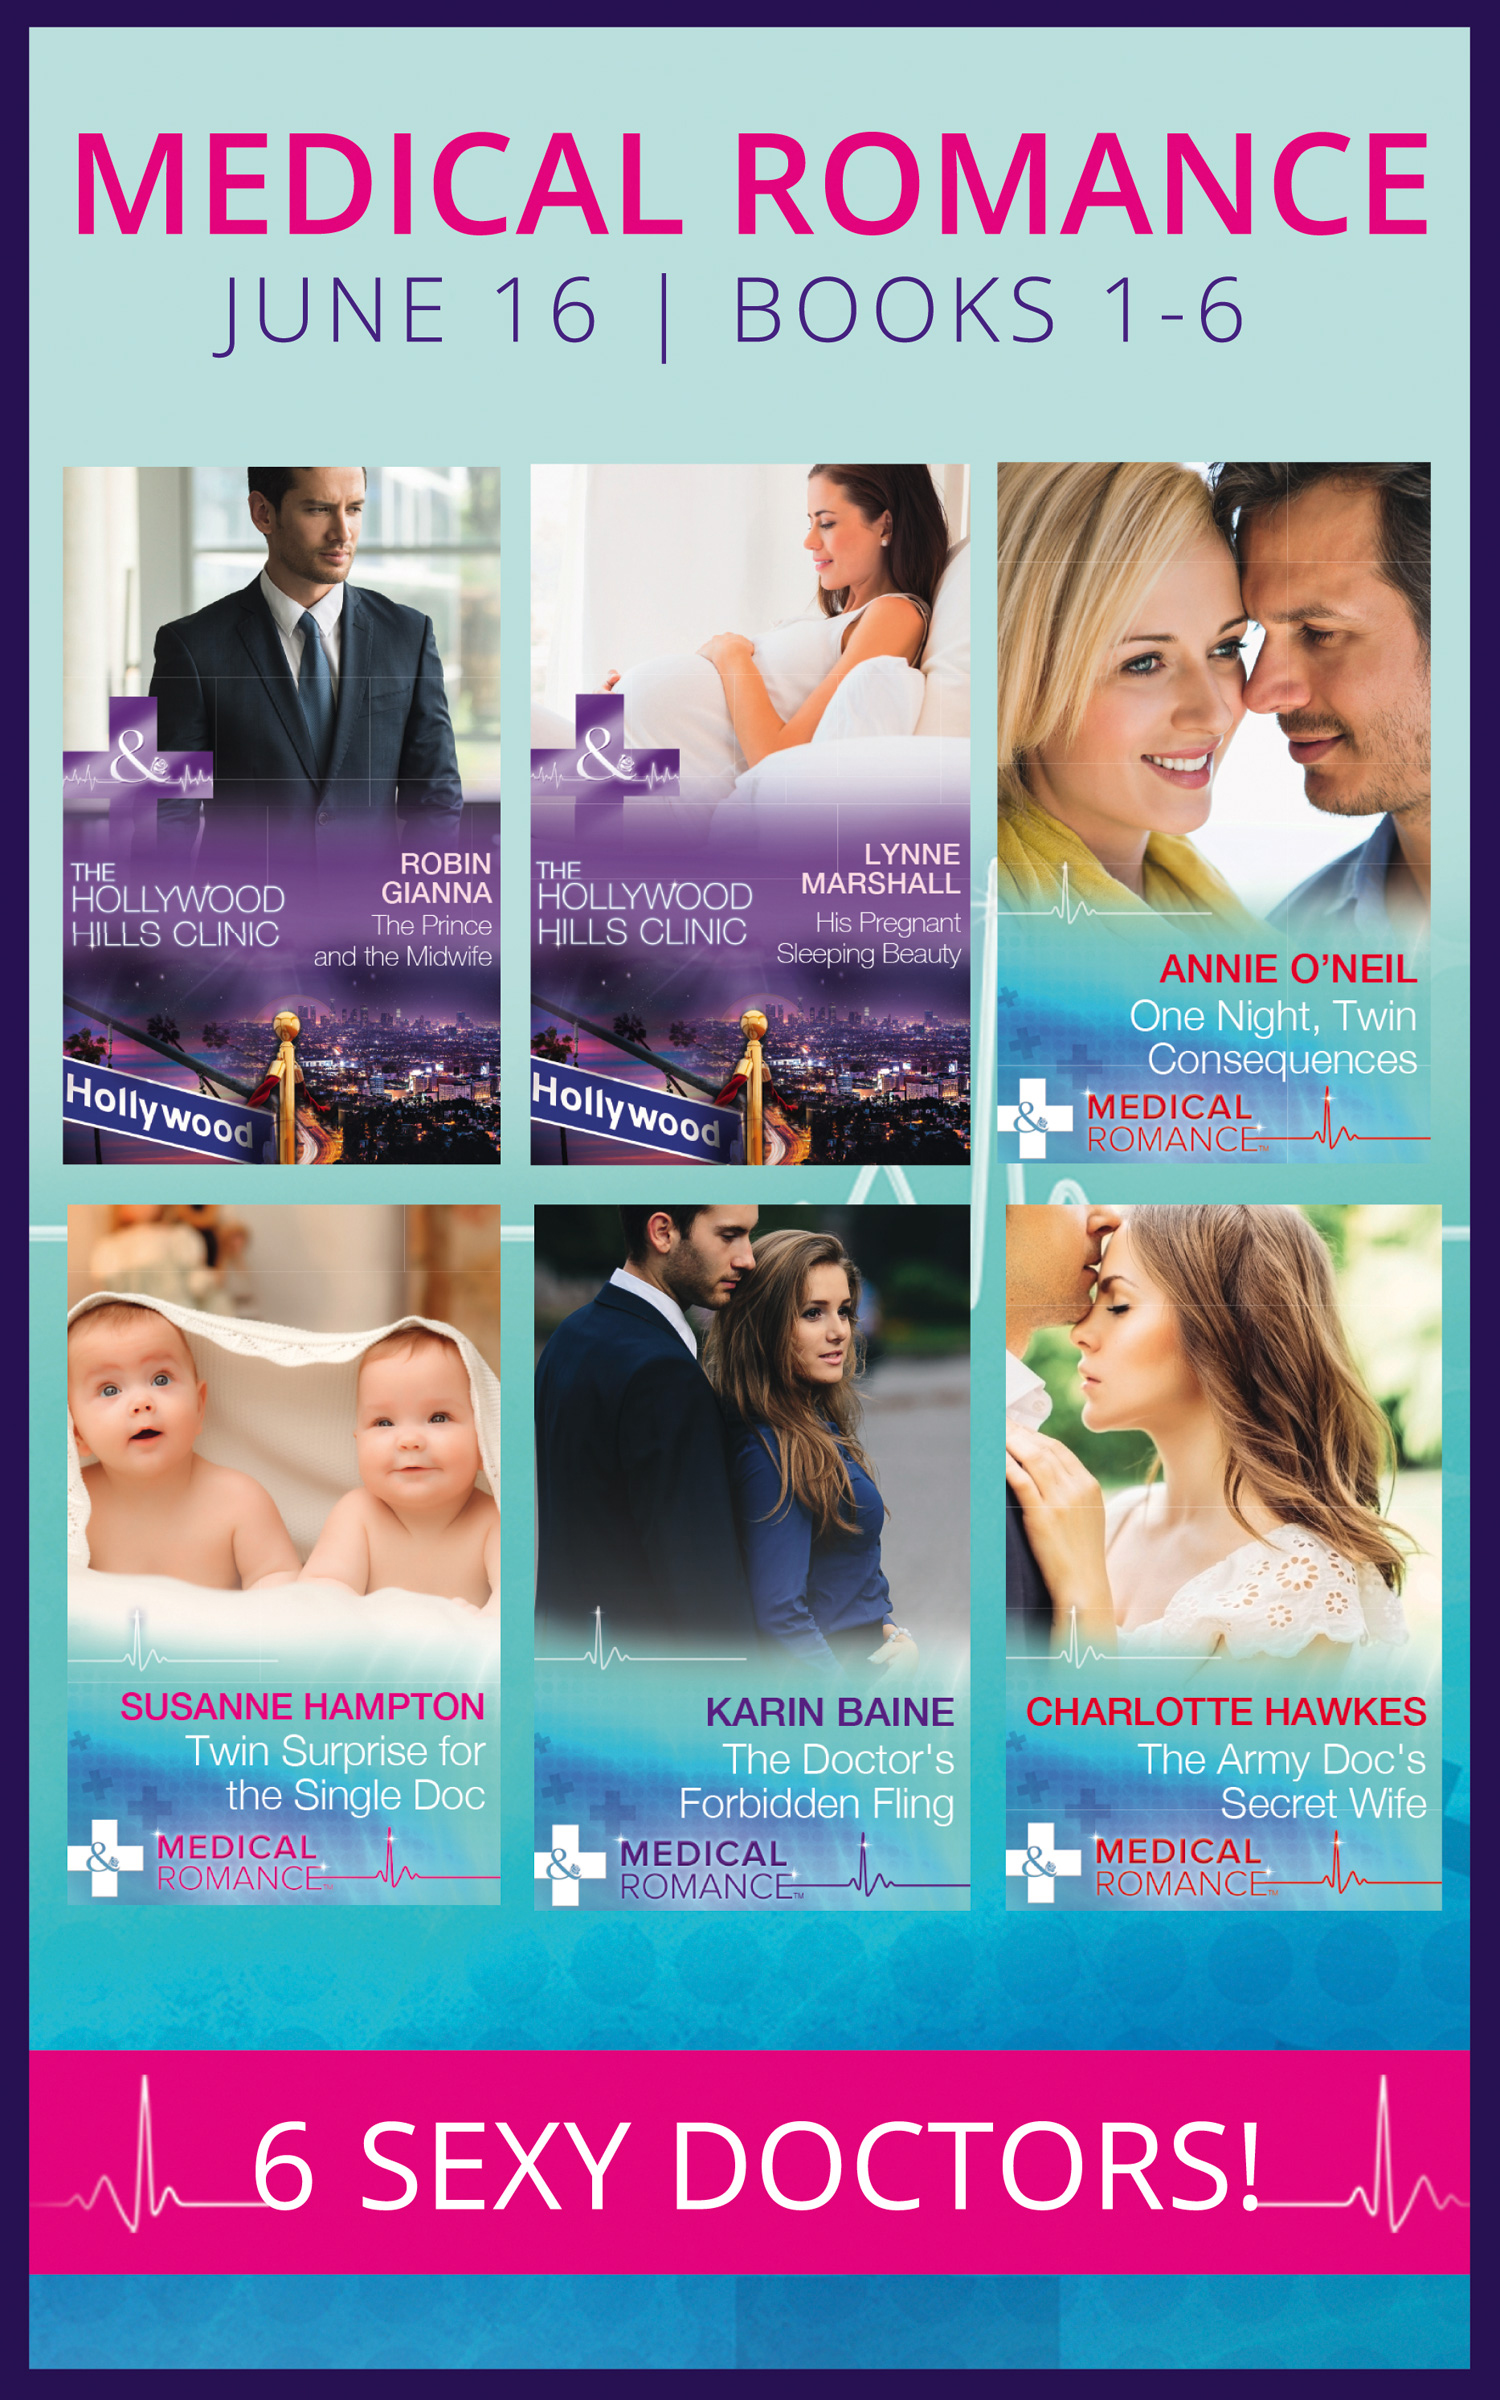 Medical Romance June 2016 Books 1-6